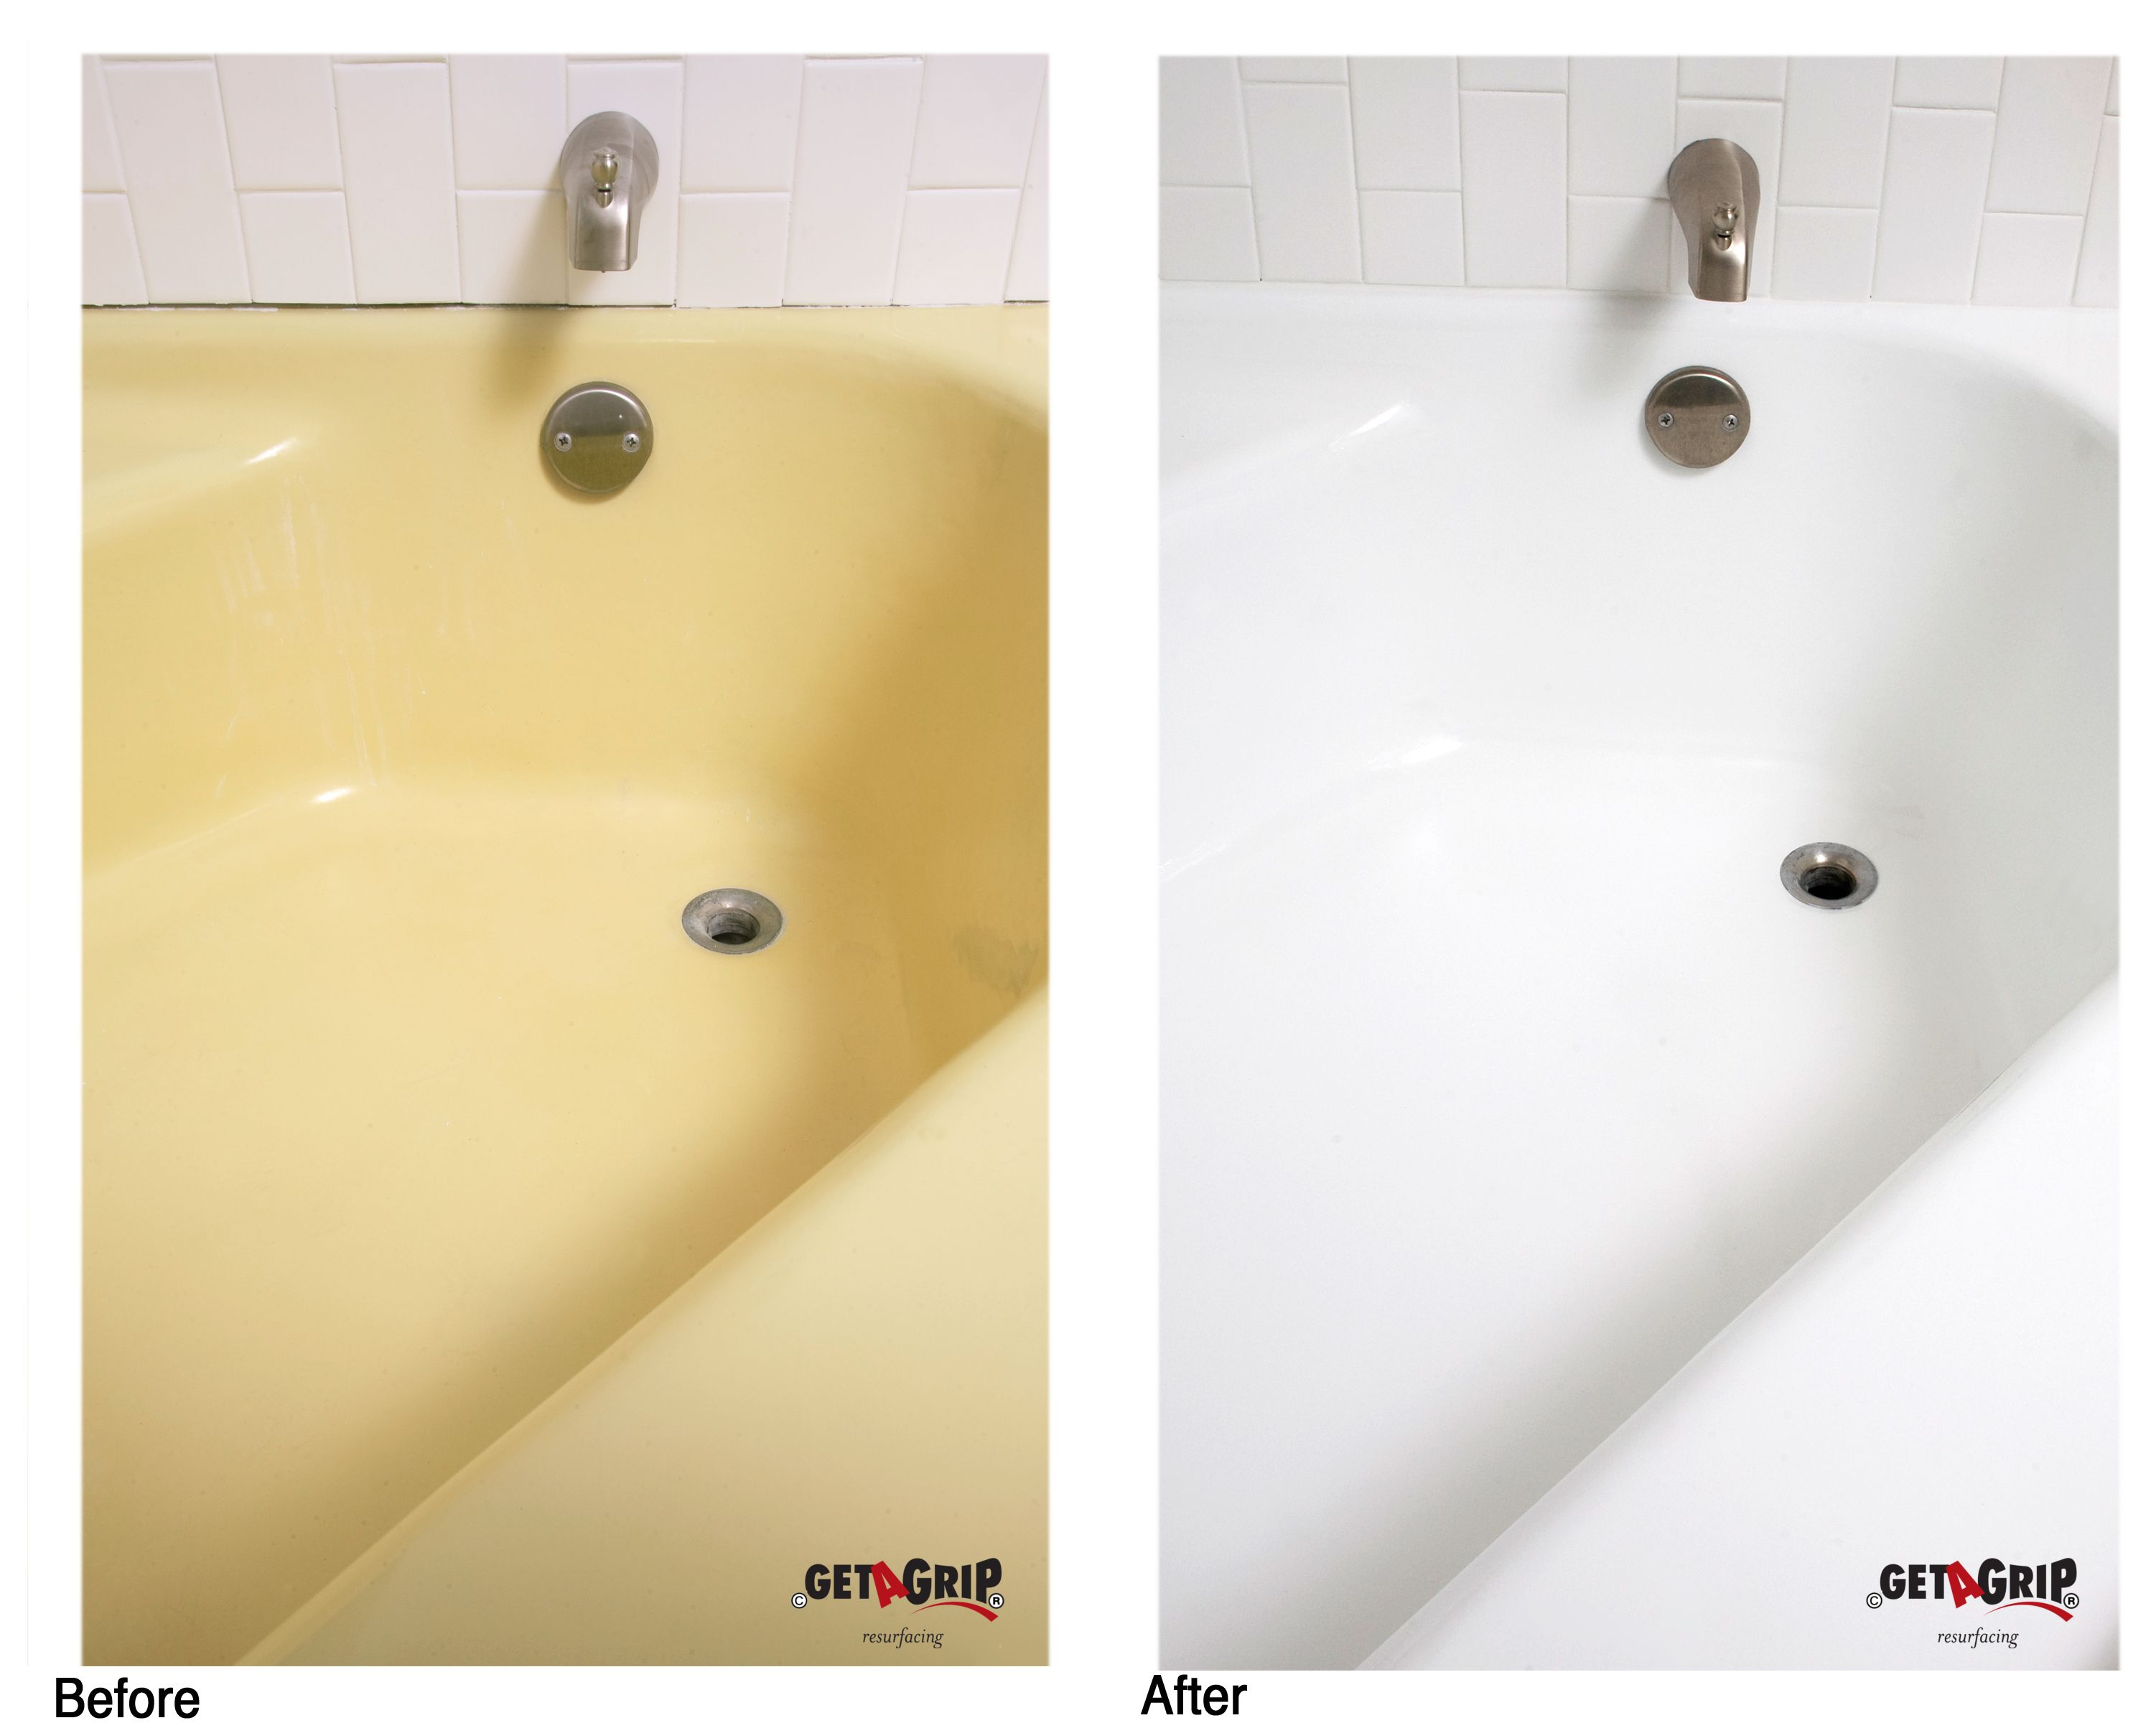 Bathtub Resurfacing | Bathtub Resurfacing | Pinterest | Bathtub ...